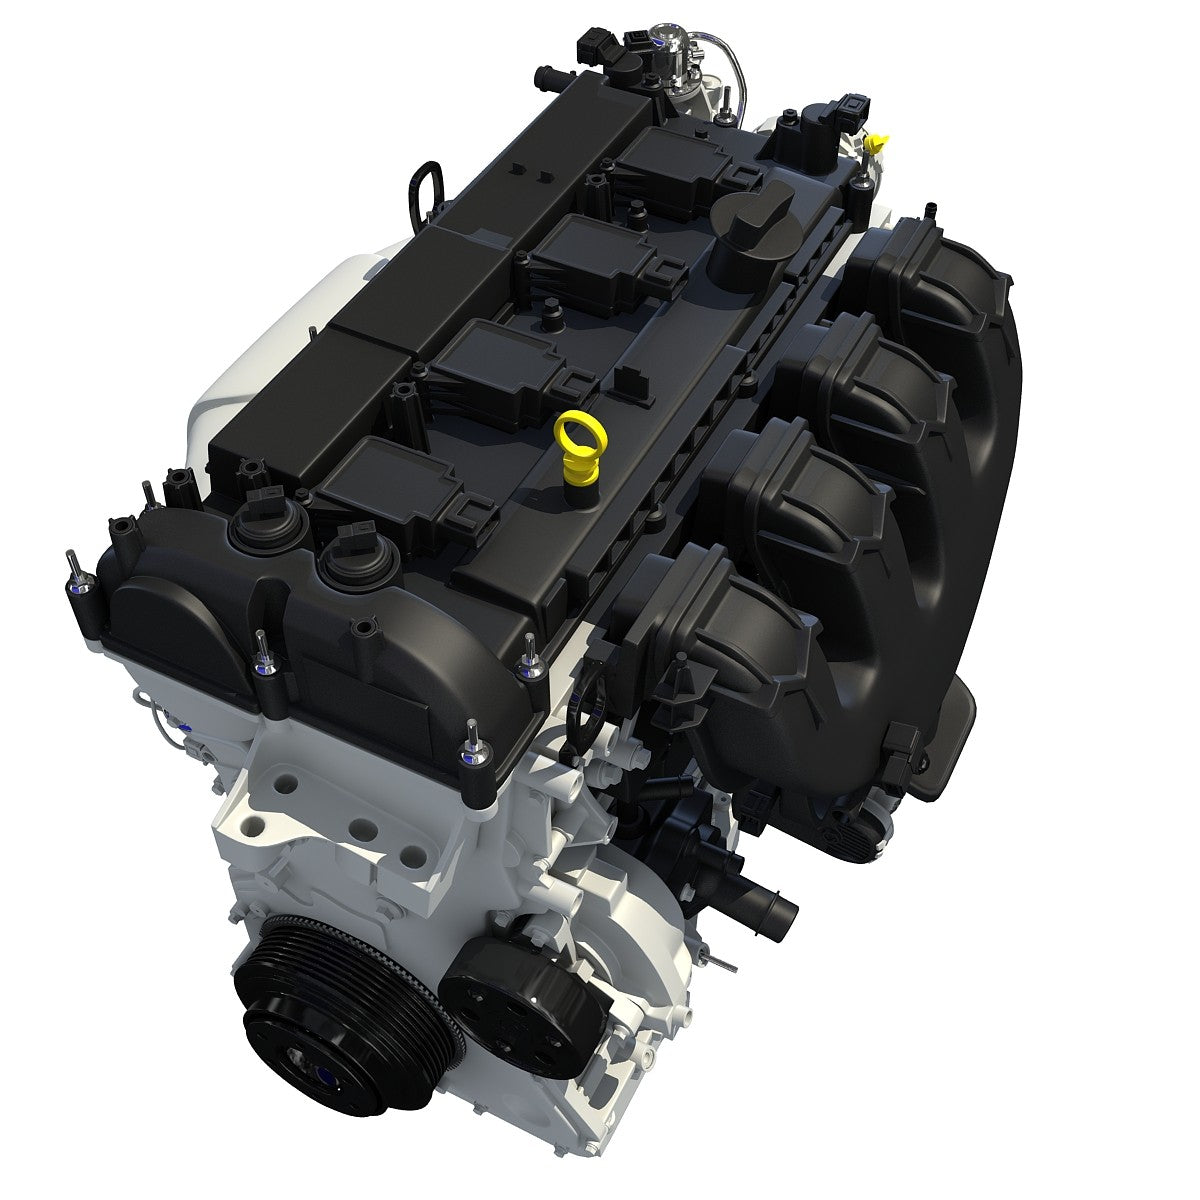 3D Turbo Engine Model